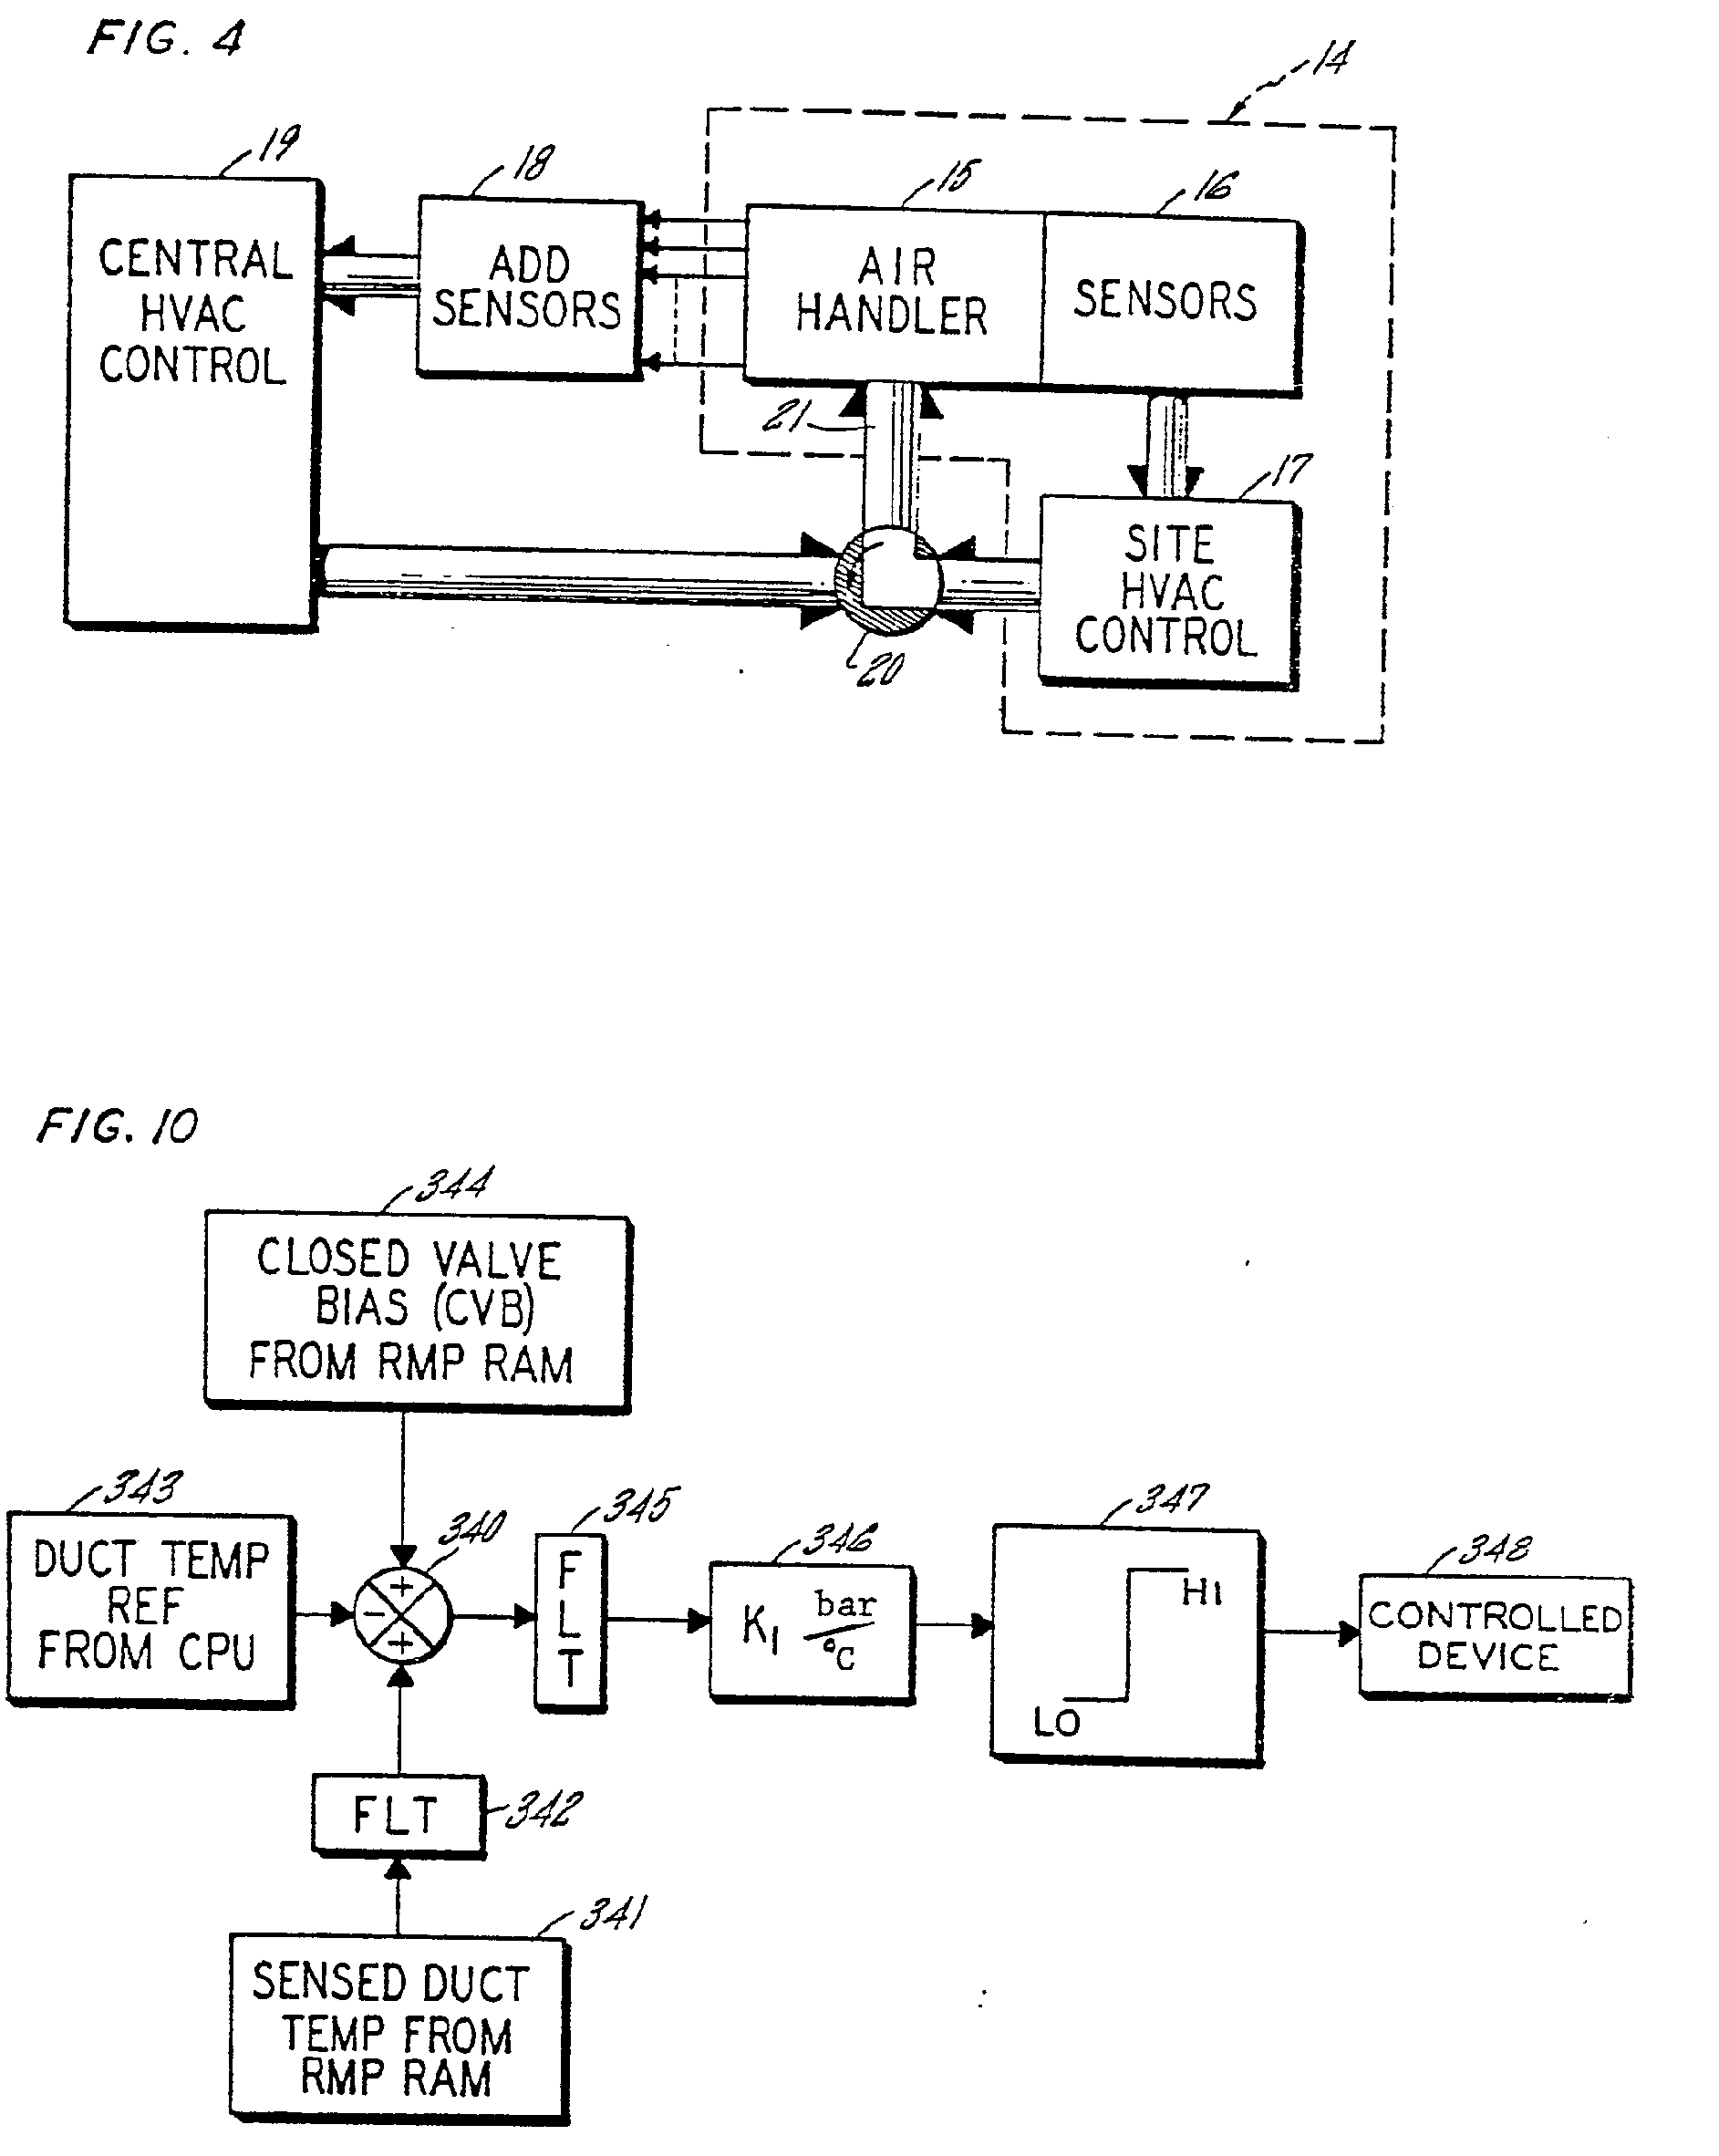 Patent Ep0001377a1 Apparatus And Method For Energy Saving Control Logic Diagram Hvac Drawing